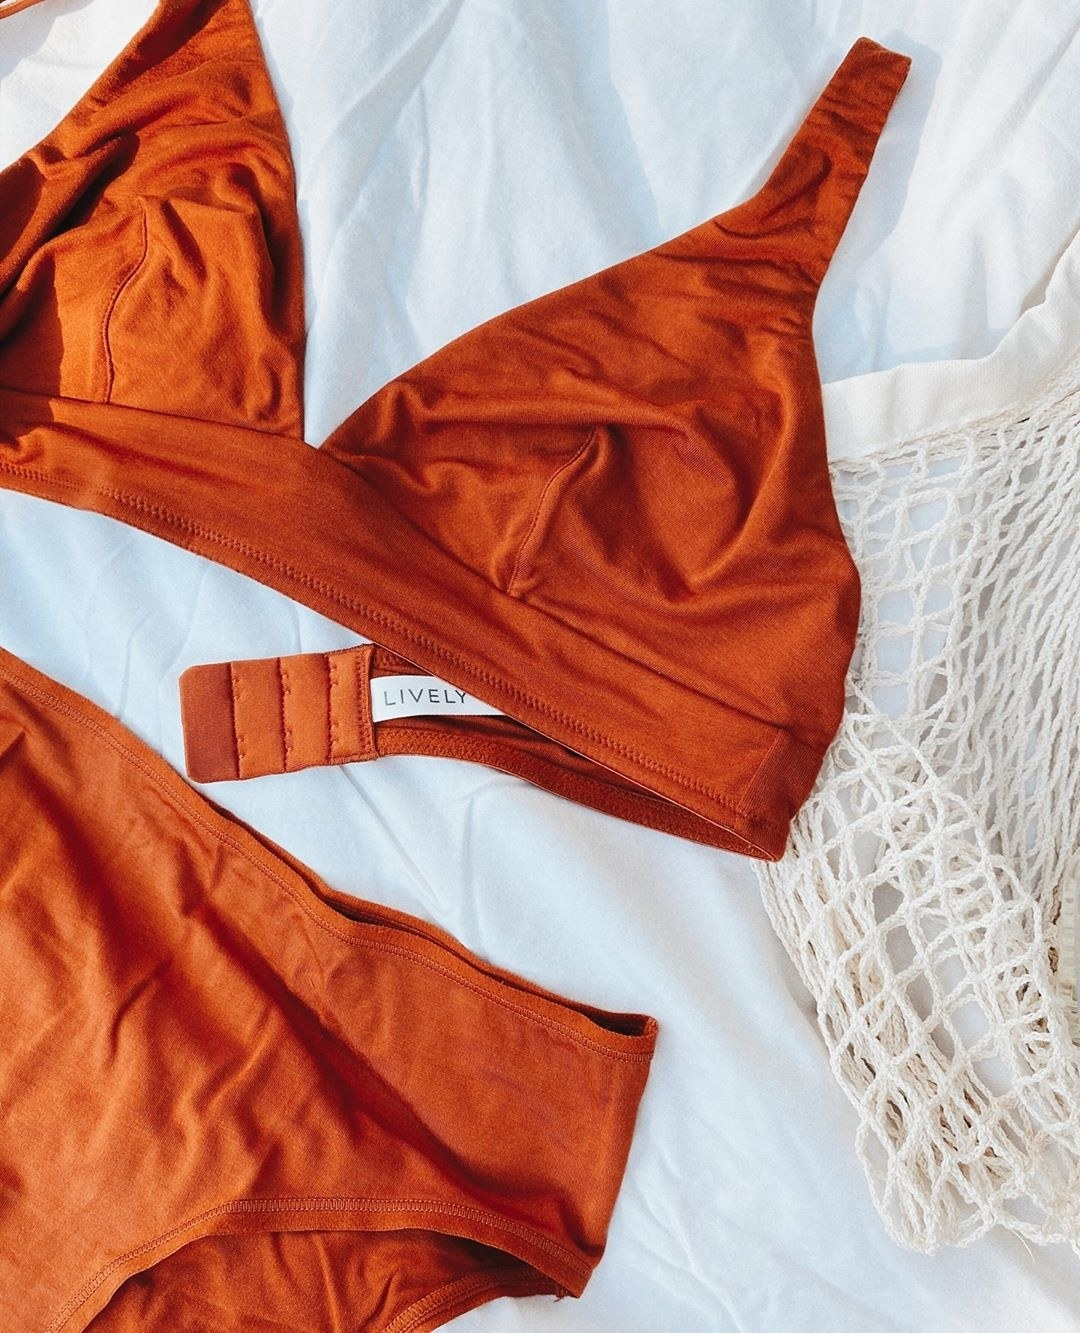 burnt orange bralette and underwear